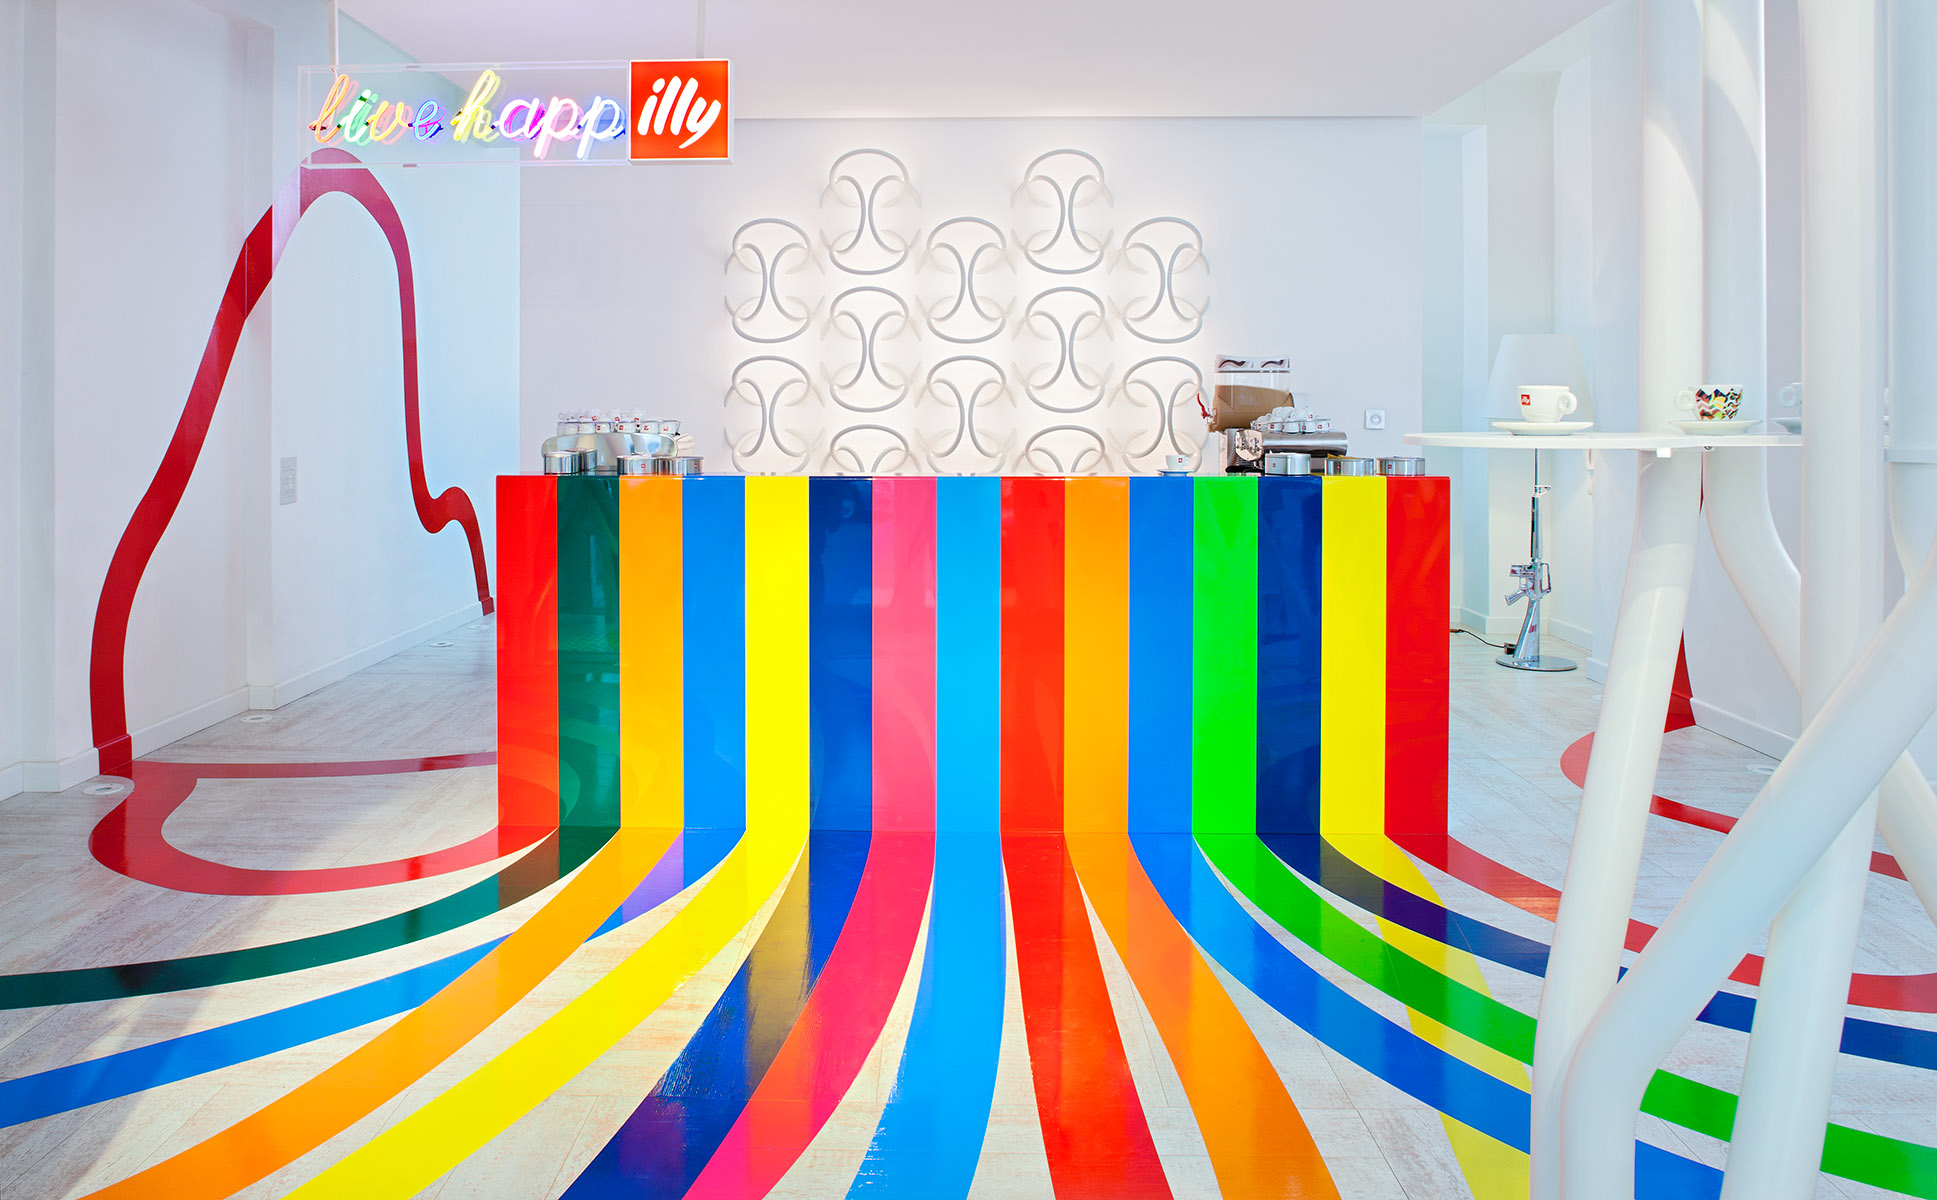 Collaboration of Italian designClient: Illy / Vann Communications